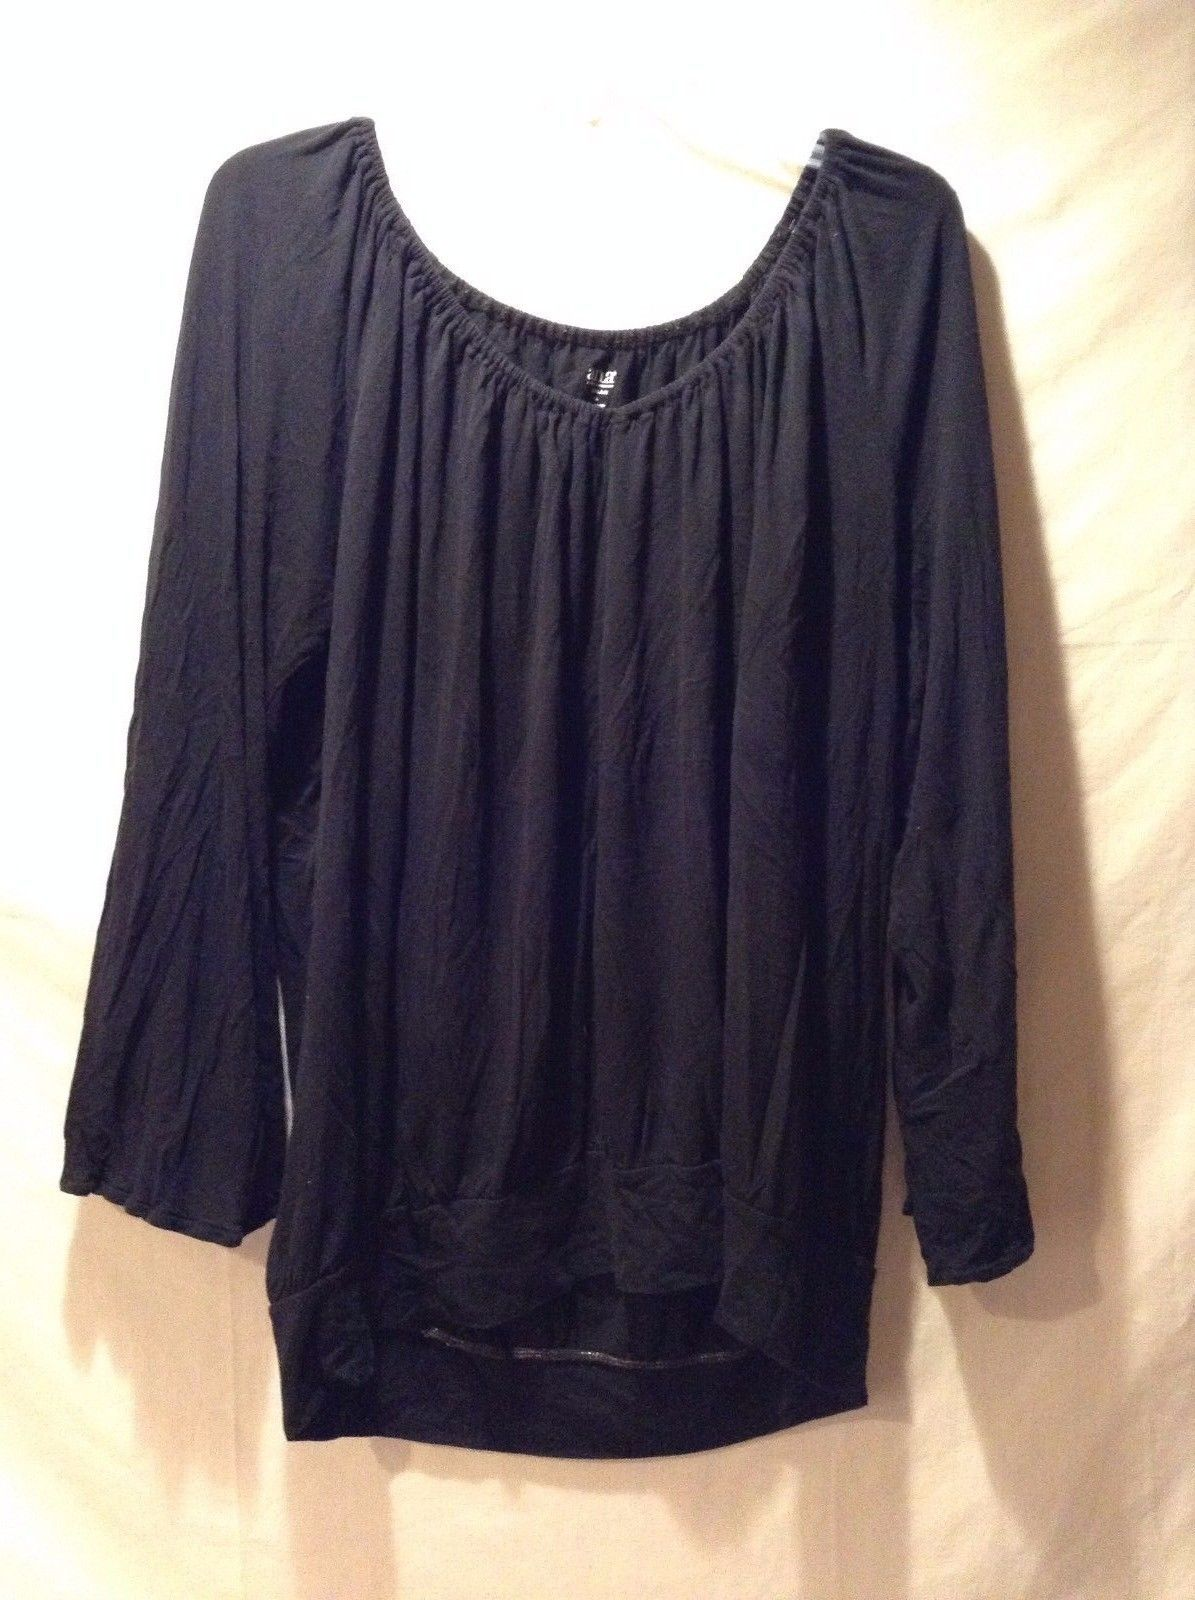 Women's Black A.N.A. Long Sleeved Shirt Size 1XL Loose Fit Adorable